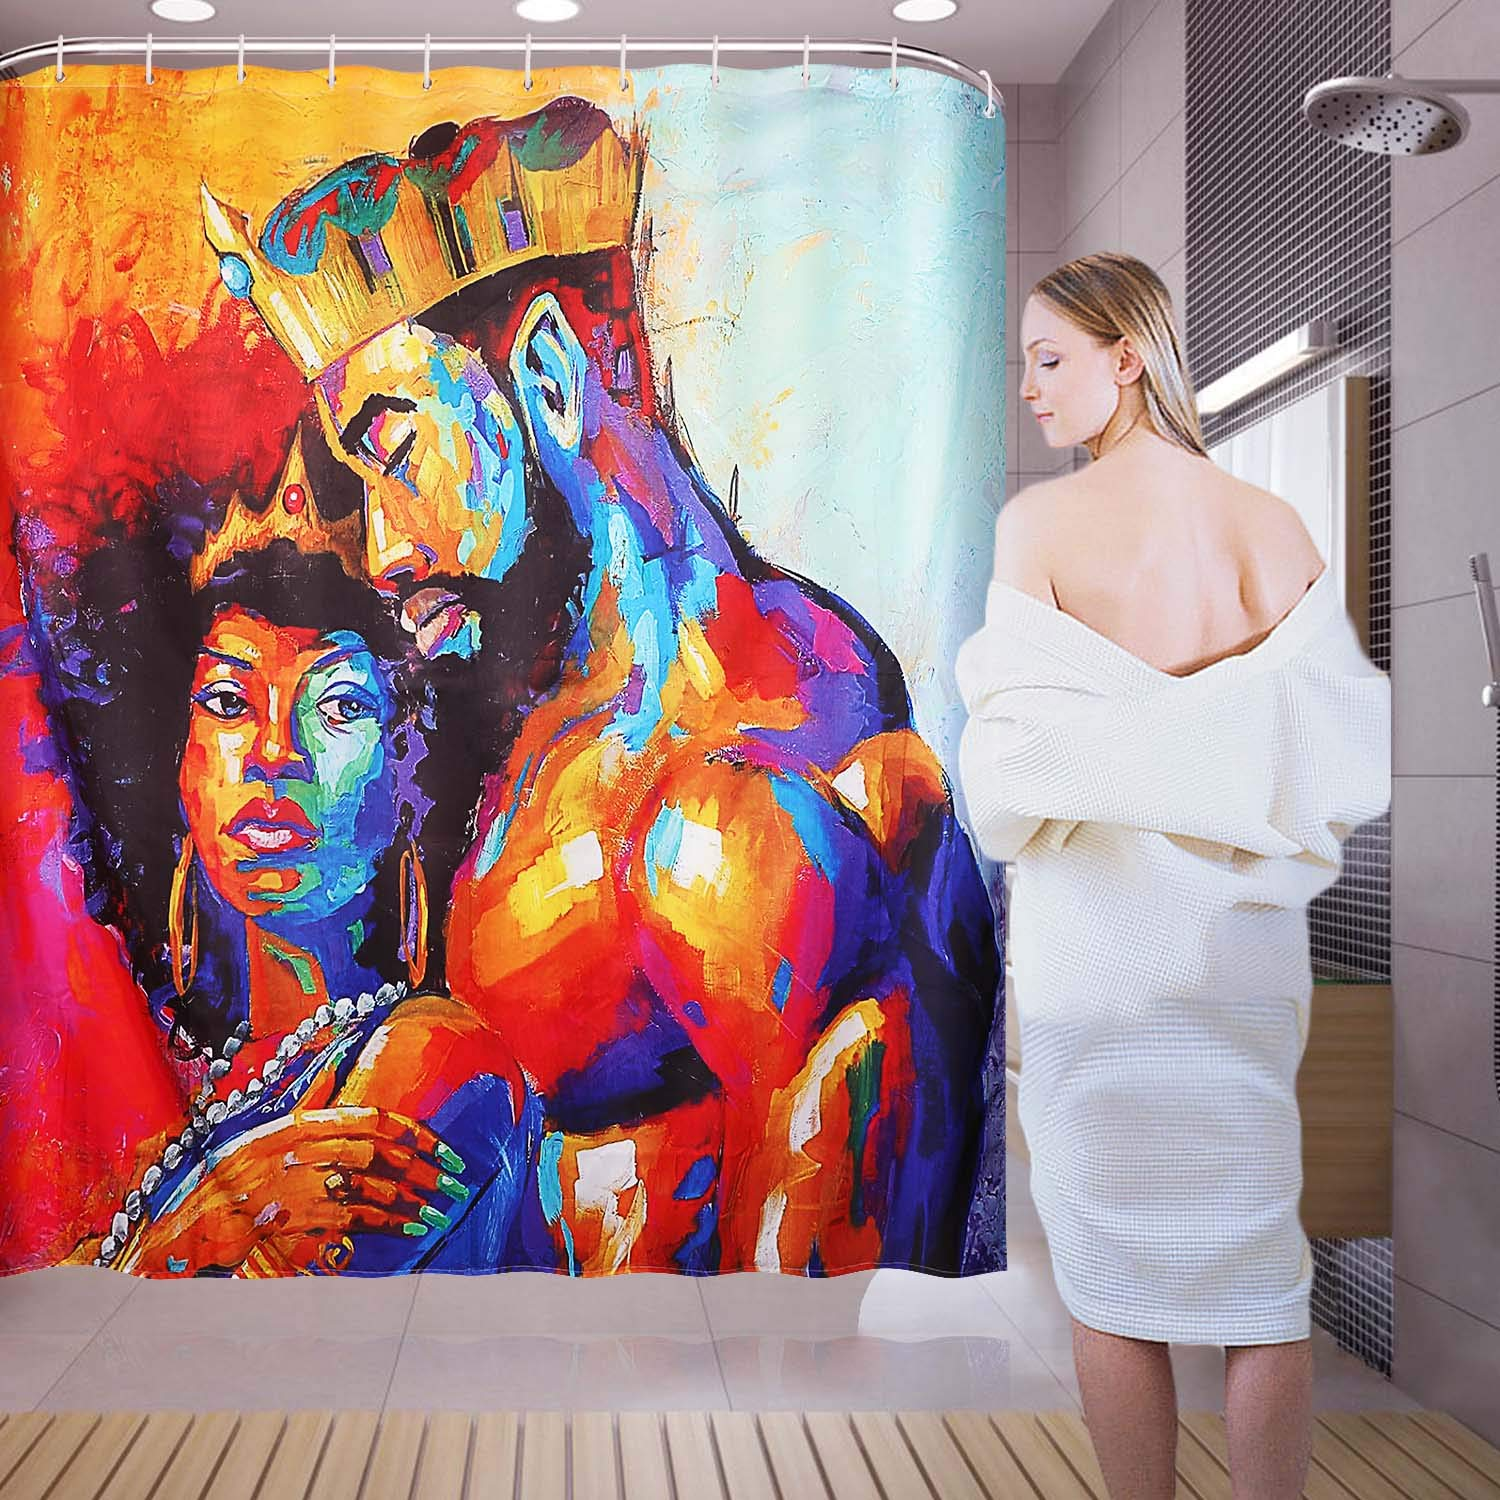 Flymall Shower Curtain Set,Waterproof Washable Polyester Fabric African Couples Painting Shower Curtain Including 12-Pack Shower Hooks for Home Bathroom Decor(71 x 71)